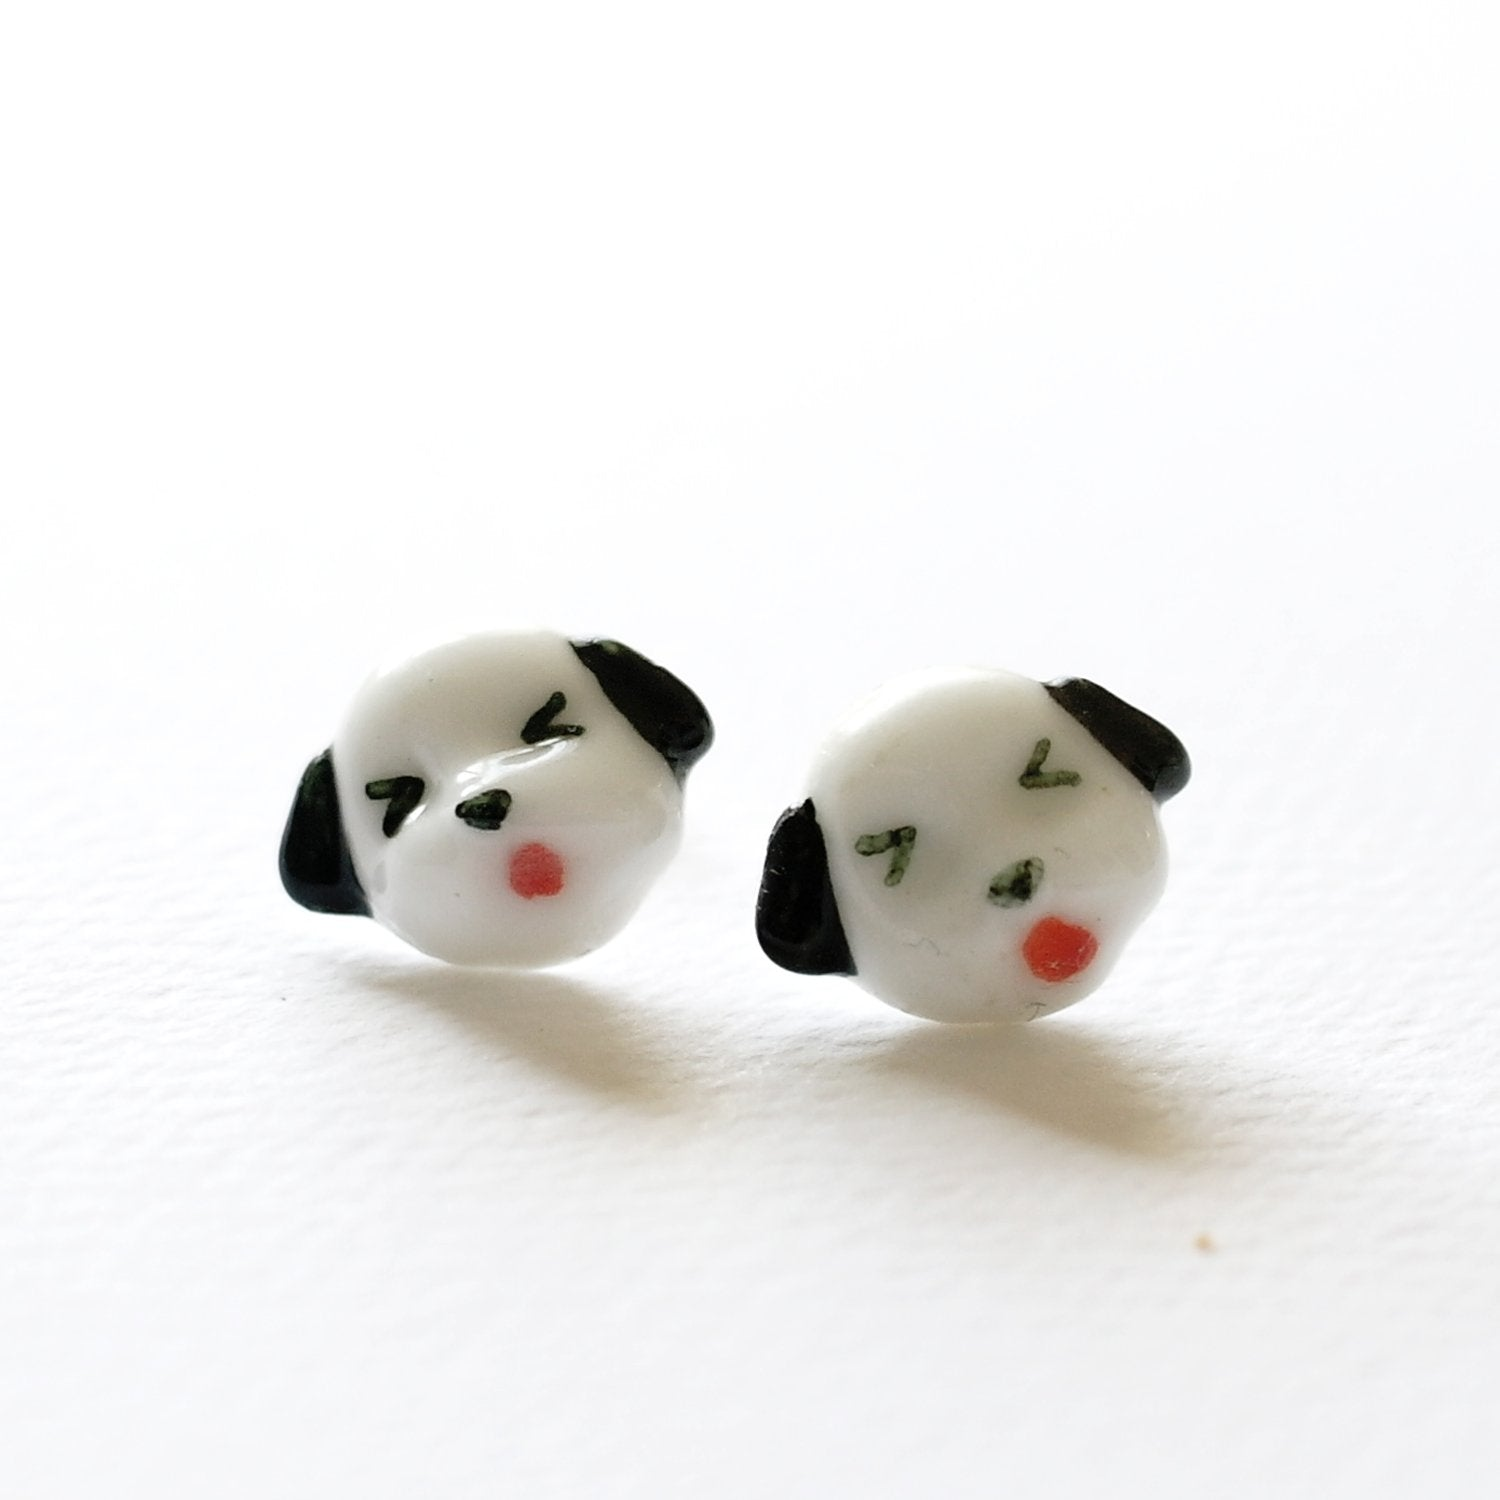 Lil Doggy Ceramic Earrings